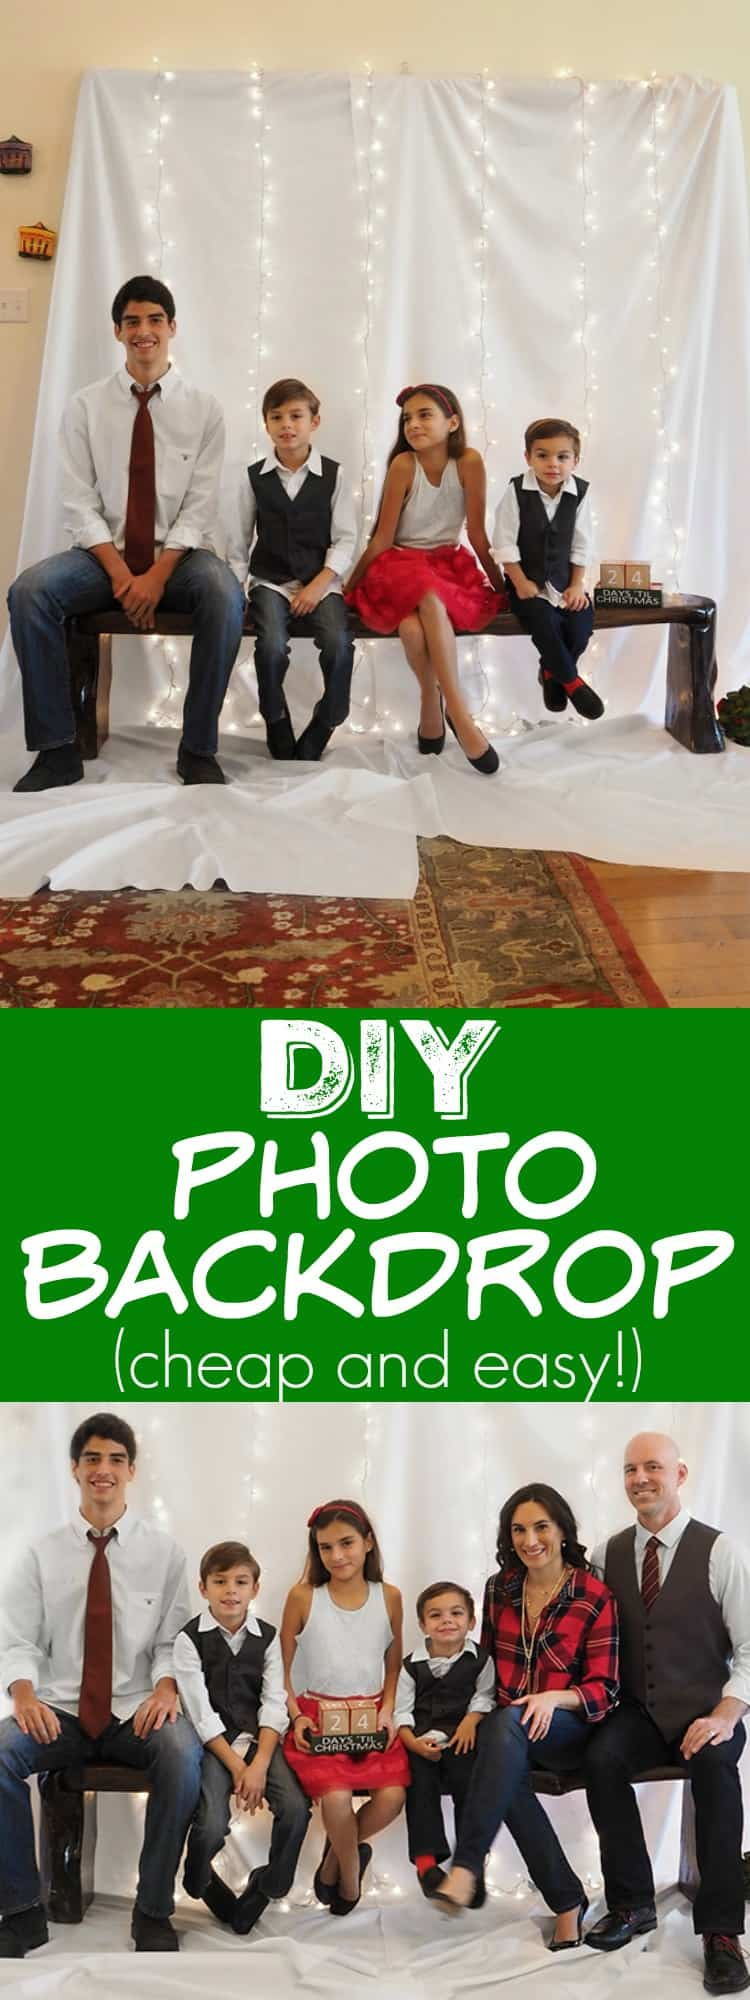 Here is how to turn a living room into a photo studio for your holiday cards and take great pictures without a professional photographer!